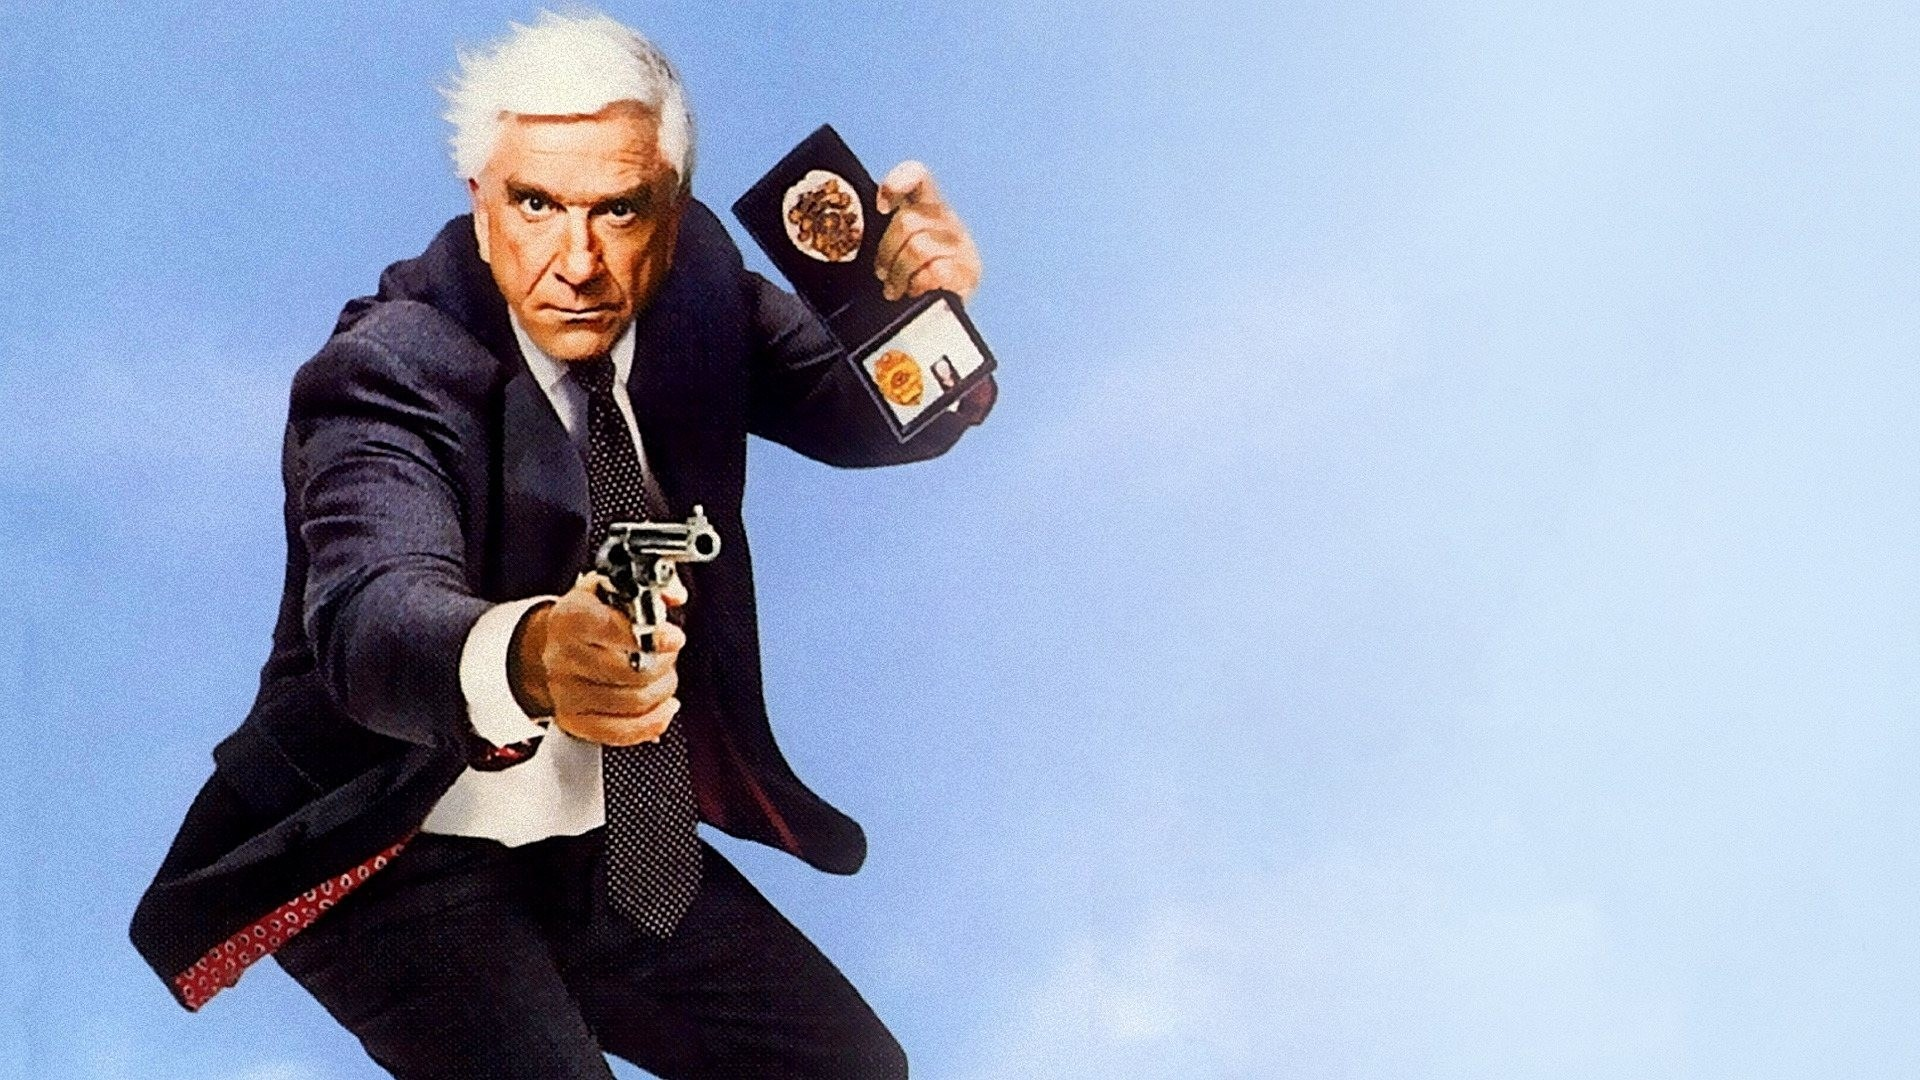 $2.50 Reviews: The Naked Gun: From the Files of Police